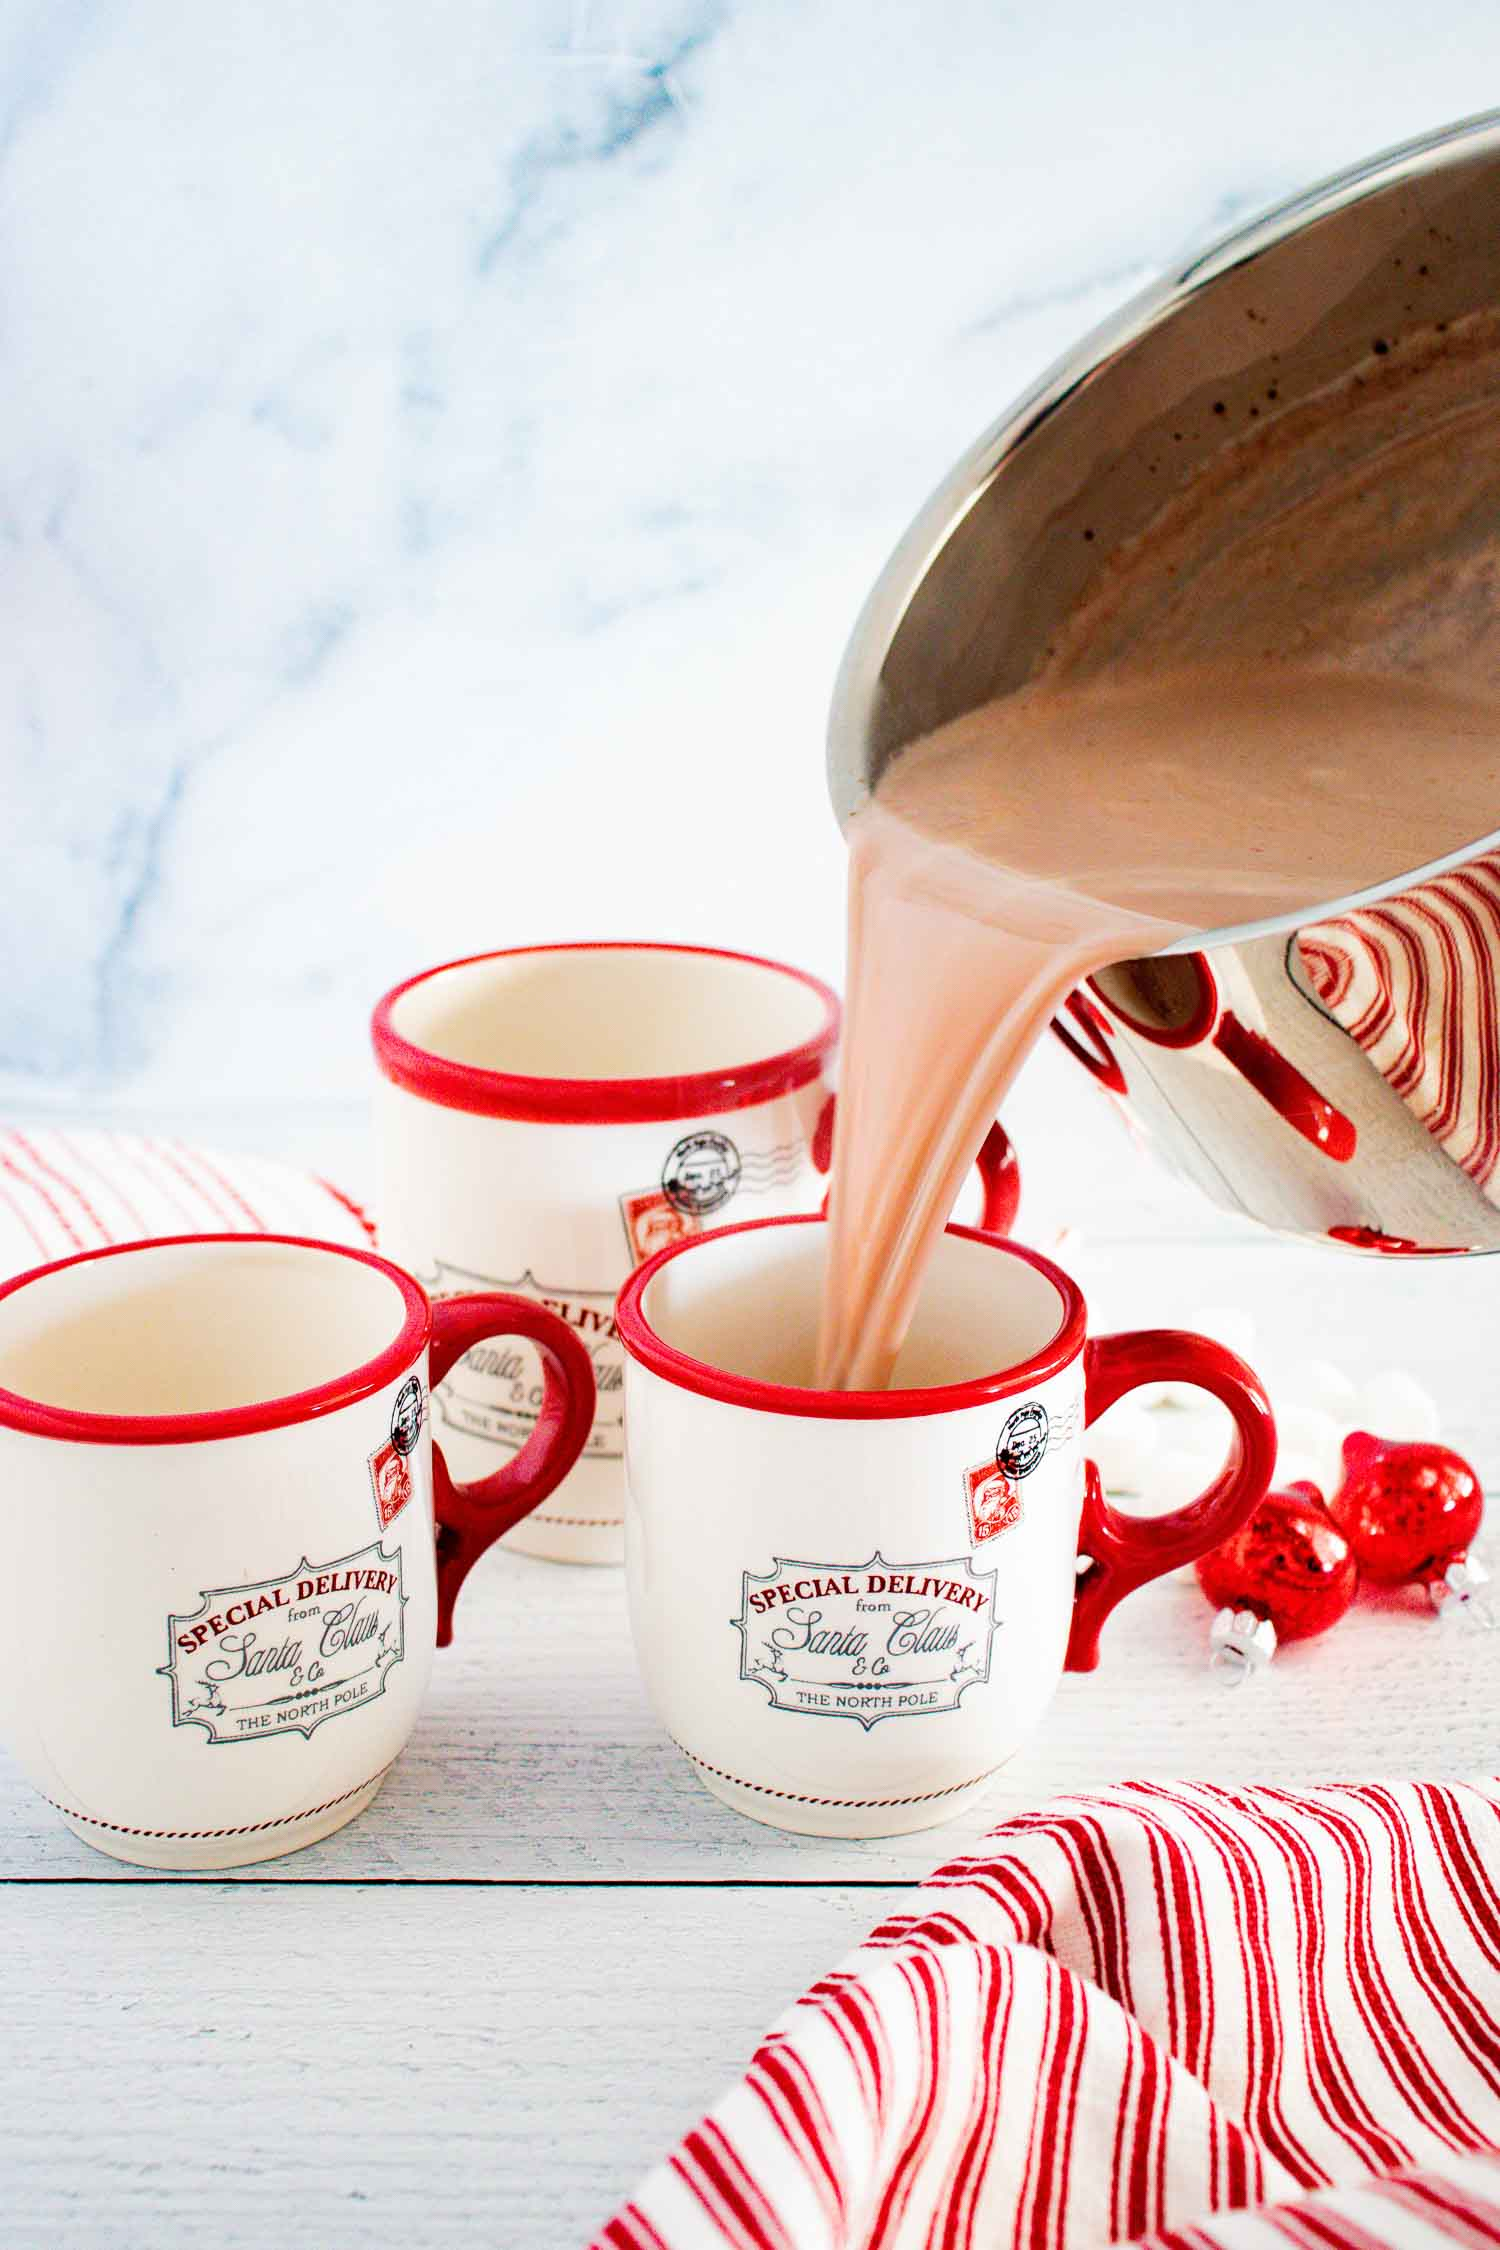 A metal pot pouring hot chocolate into a white mug with writing with a red handle and rim.  There are two other similar mugs next to it.